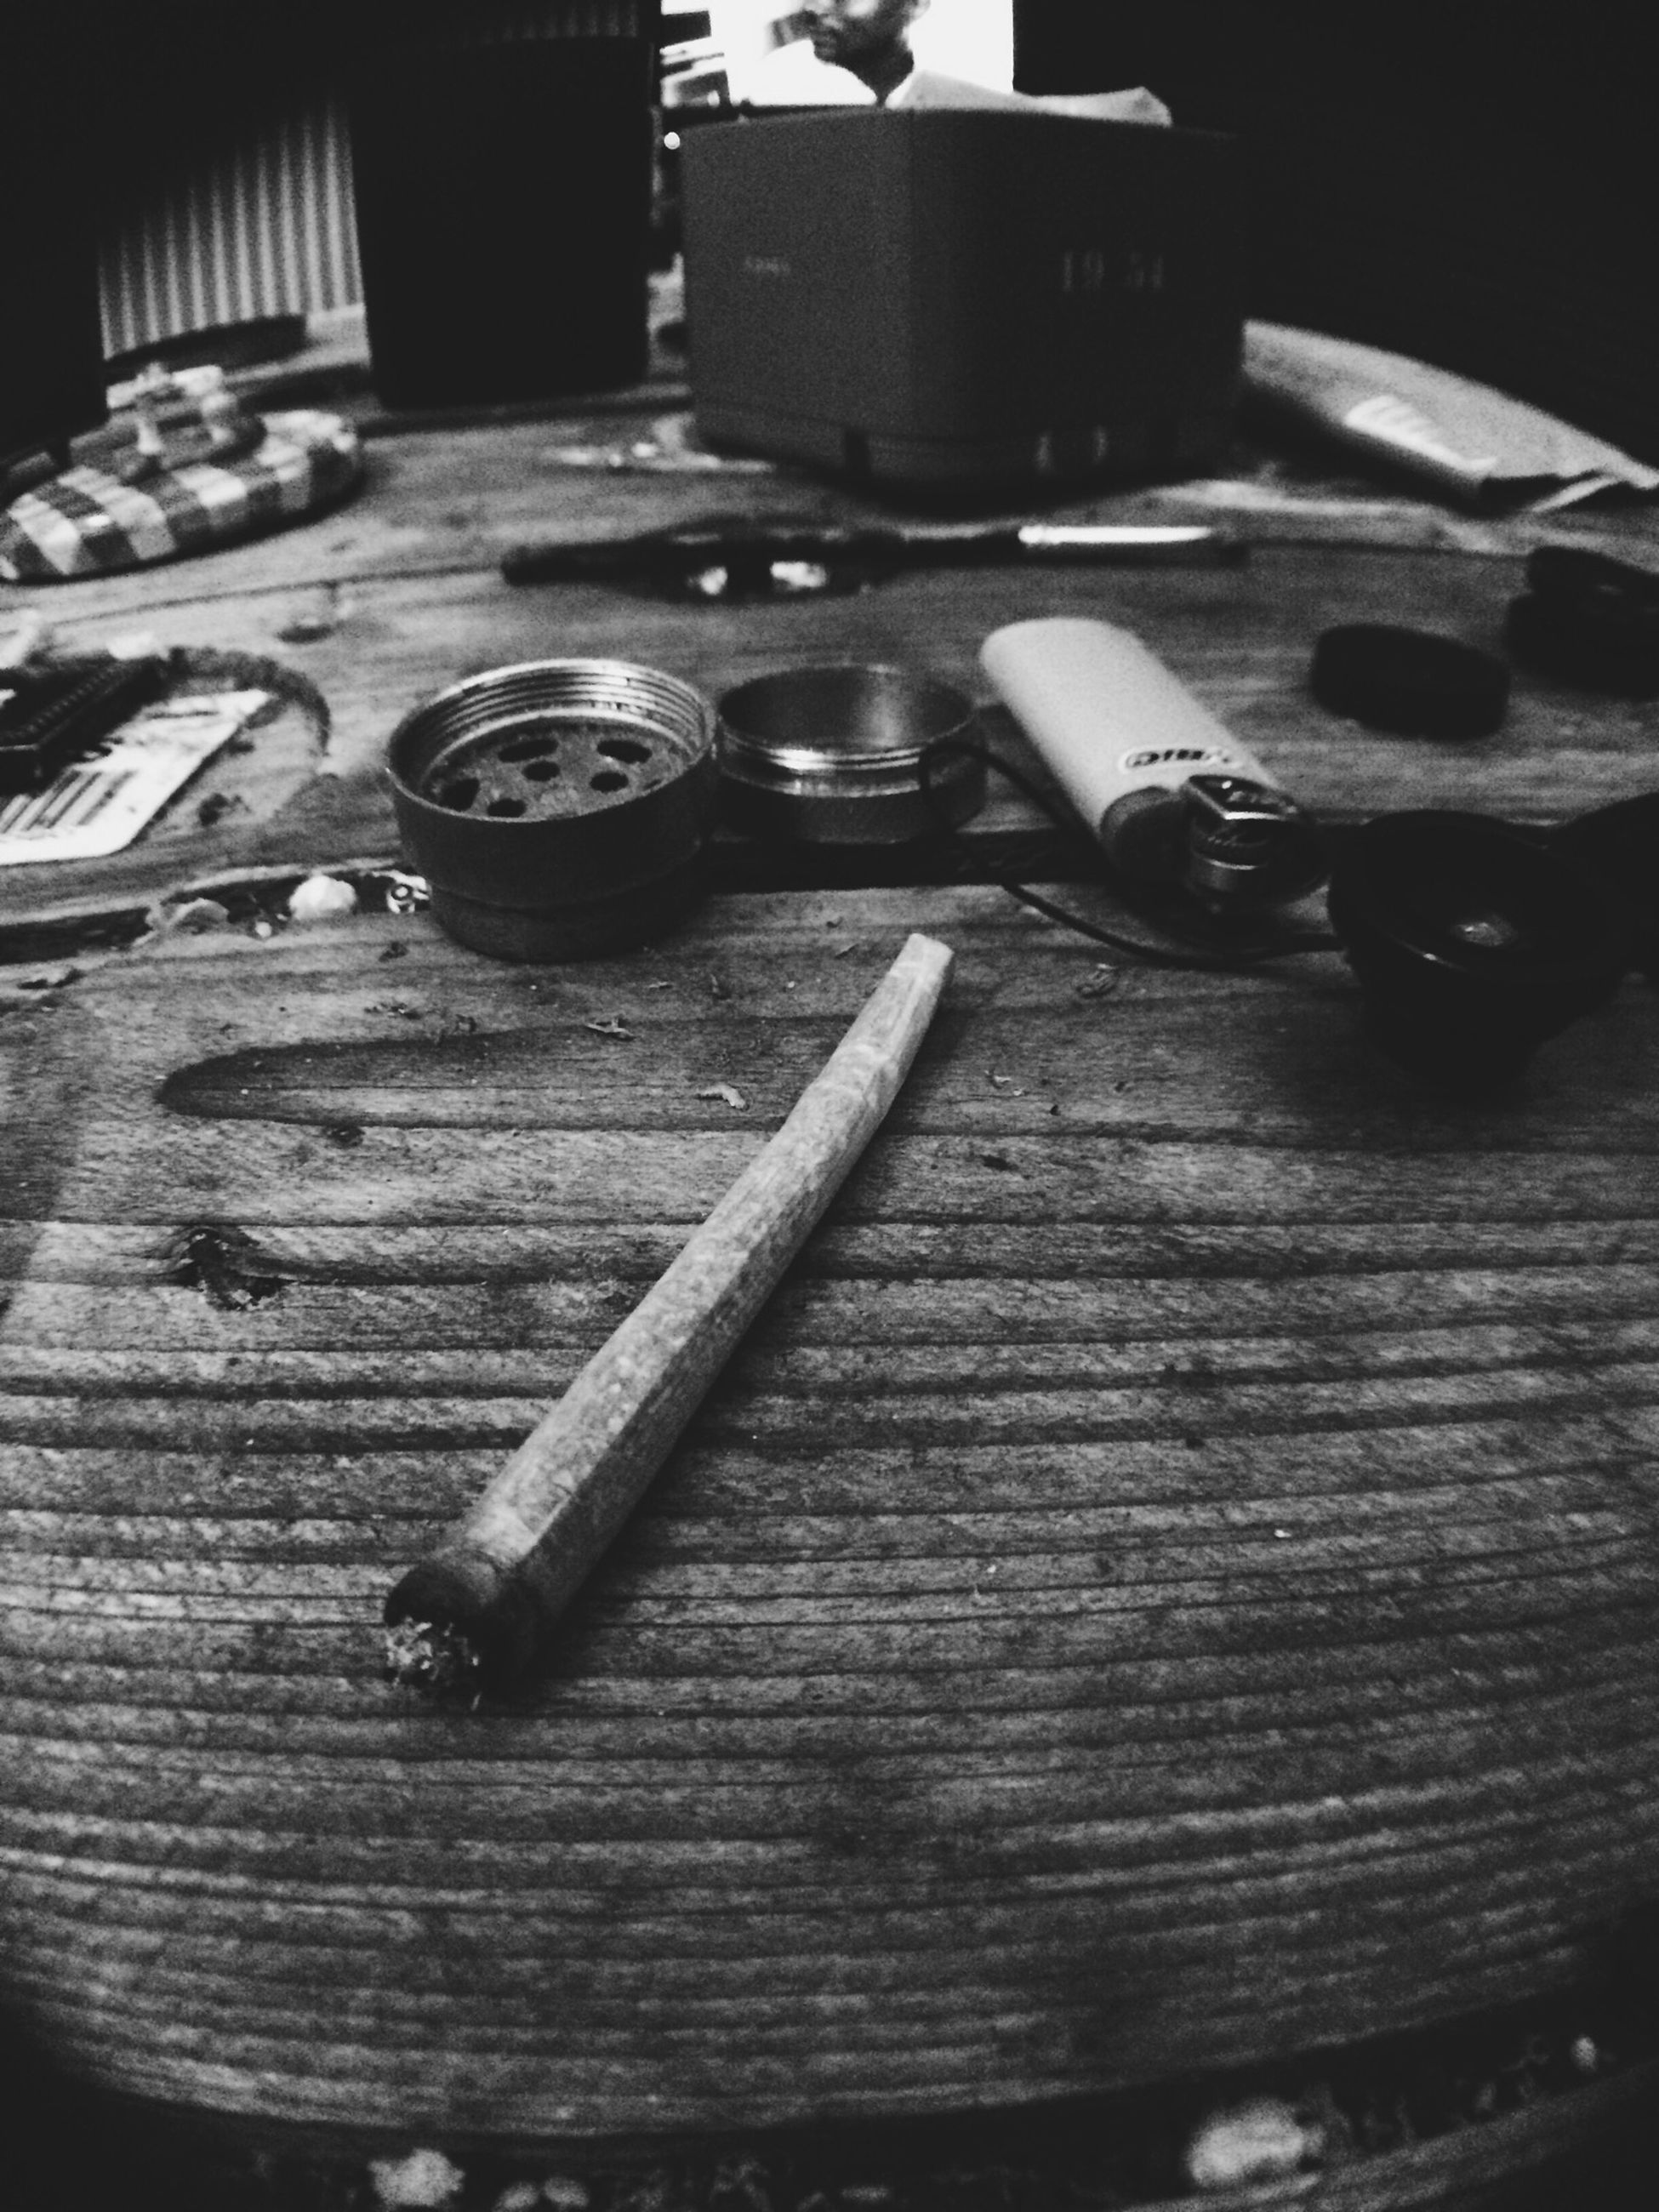 indoors, wood - material, table, high angle view, still life, wooden, old-fashioned, close-up, old, wood, no people, retro styled, equipment, metal, selective focus, home interior, absence, hardwood floor, technology, machinery